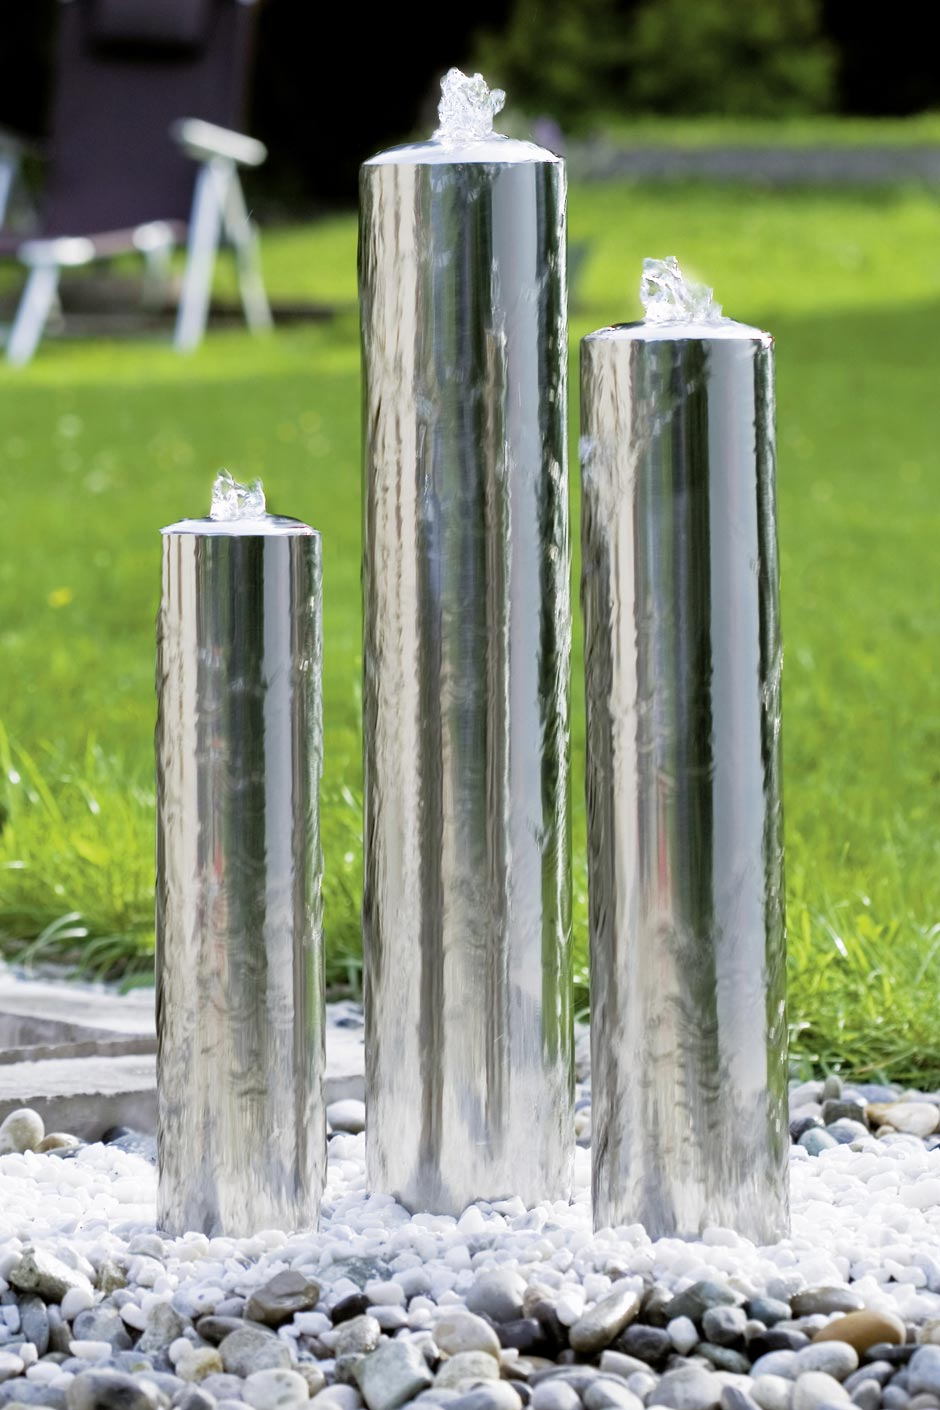 Fontaine jardin inox design tubes seliger sp cialiste for Fontaine jardin design